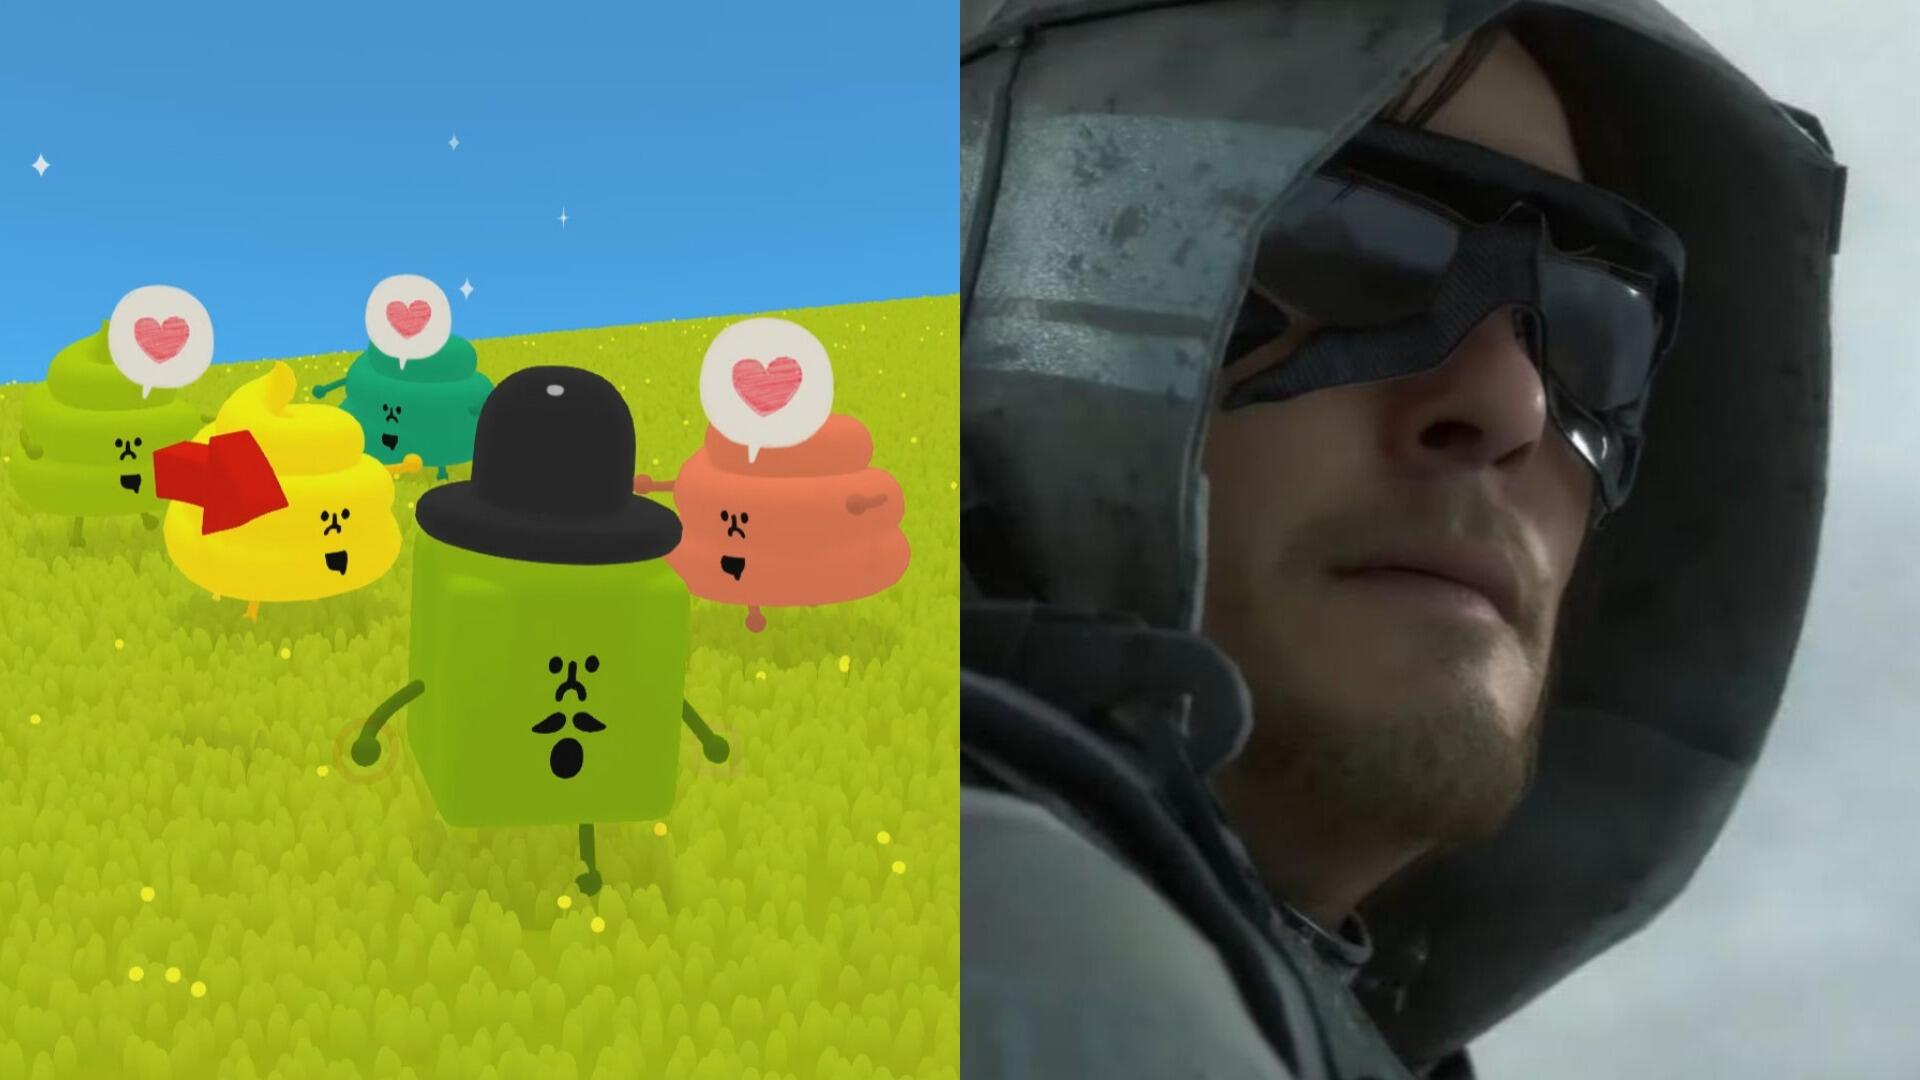 Fans Are Comparing Wattam With Death Stranding, and Now Keita Takahashi Is Weighing in